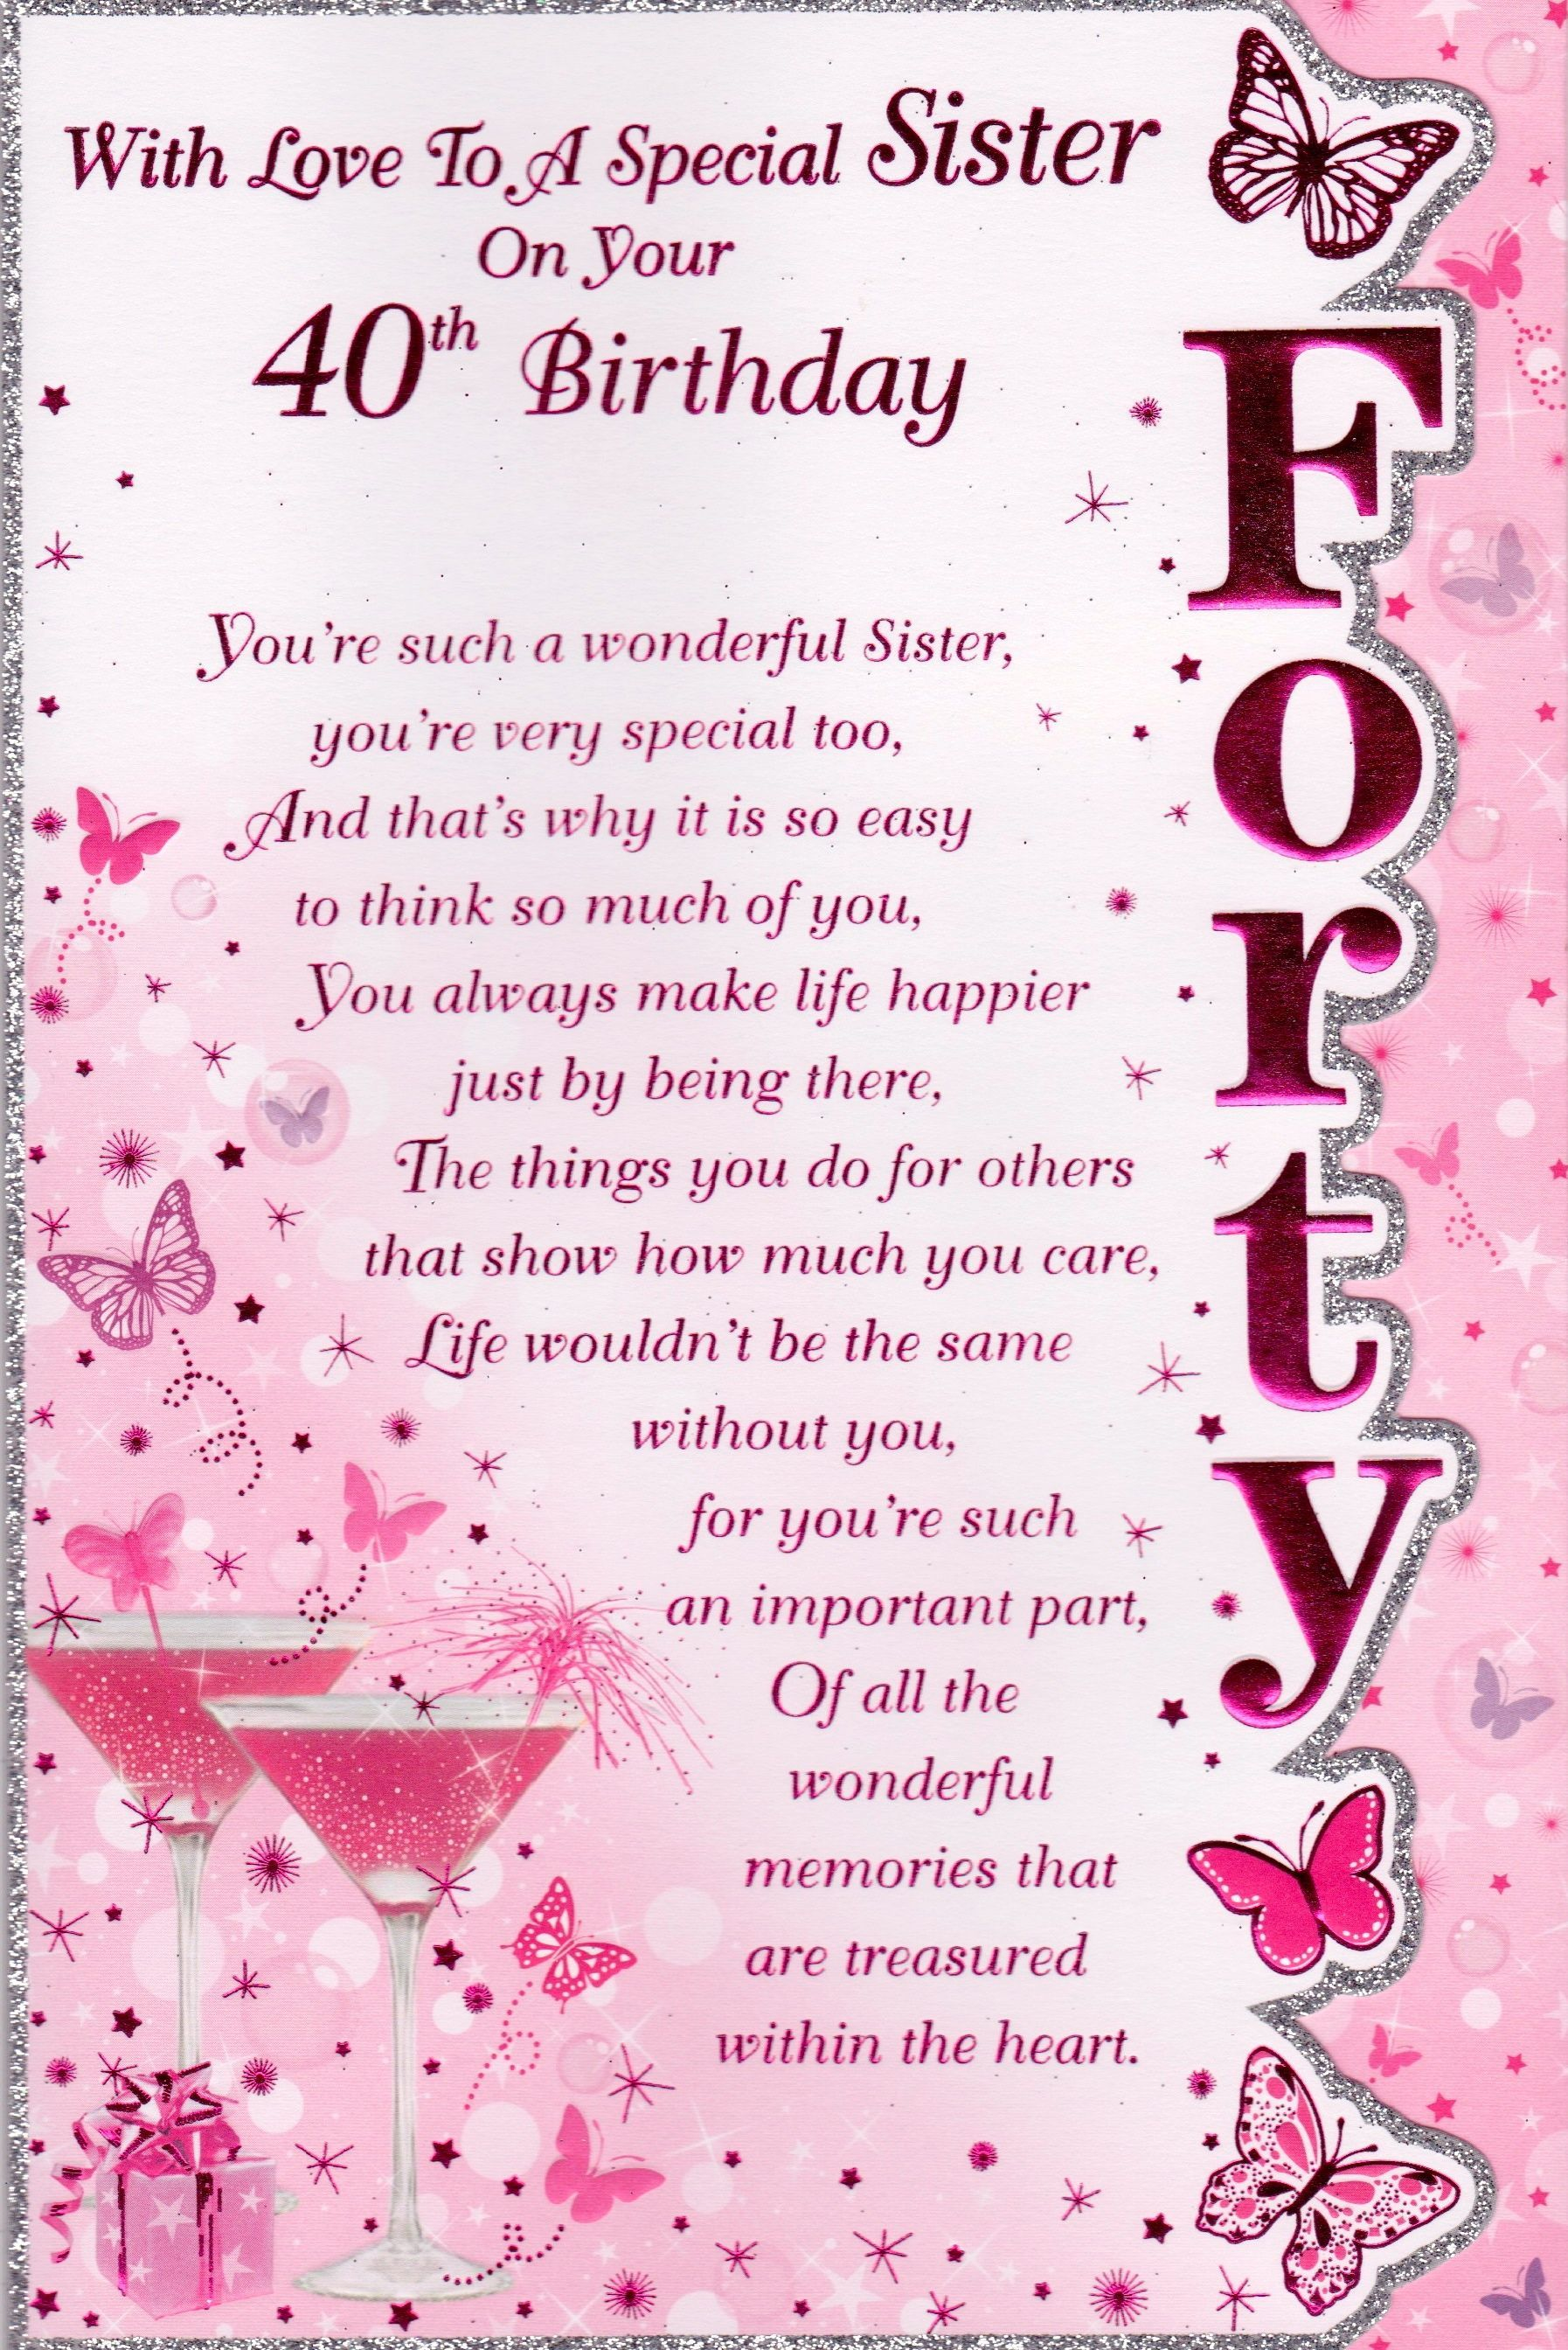 40th Birthday Wishes Quotes And Messages Birthday Quotes Inspirational 40th Birthday Quotes Birthday Quotes For Her